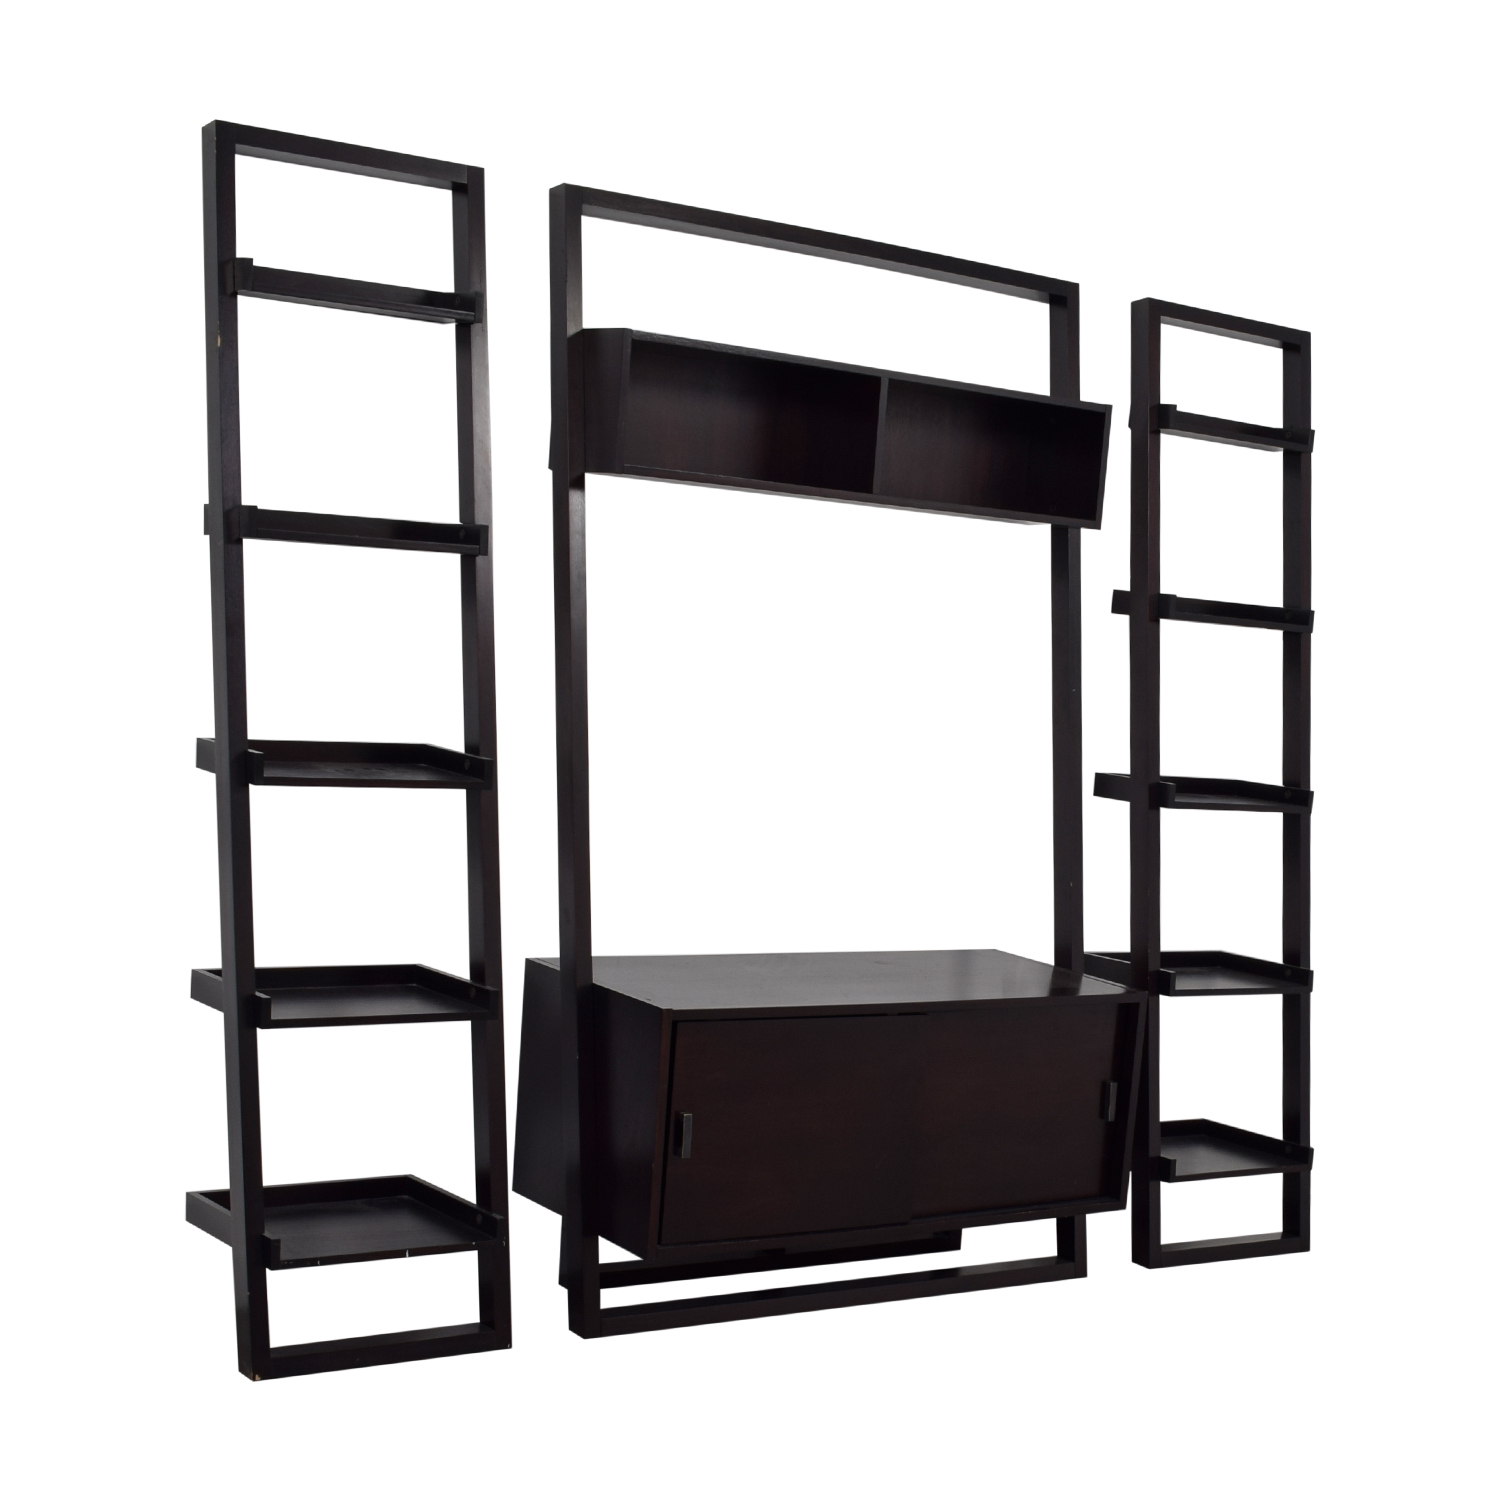 Crate & Barrel Crate & Barrel Sawyer Leaning Media Stand Bookshelves second hand